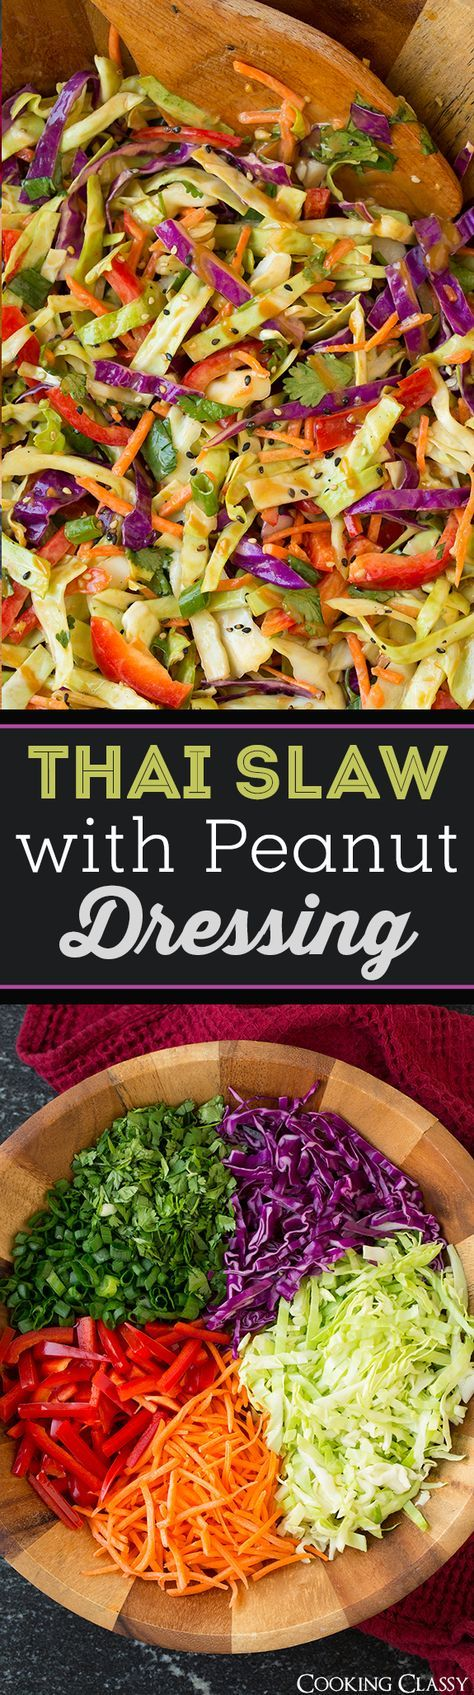 Thai Slaw with Peanut Dressing - easy side dish that's perfect with ...